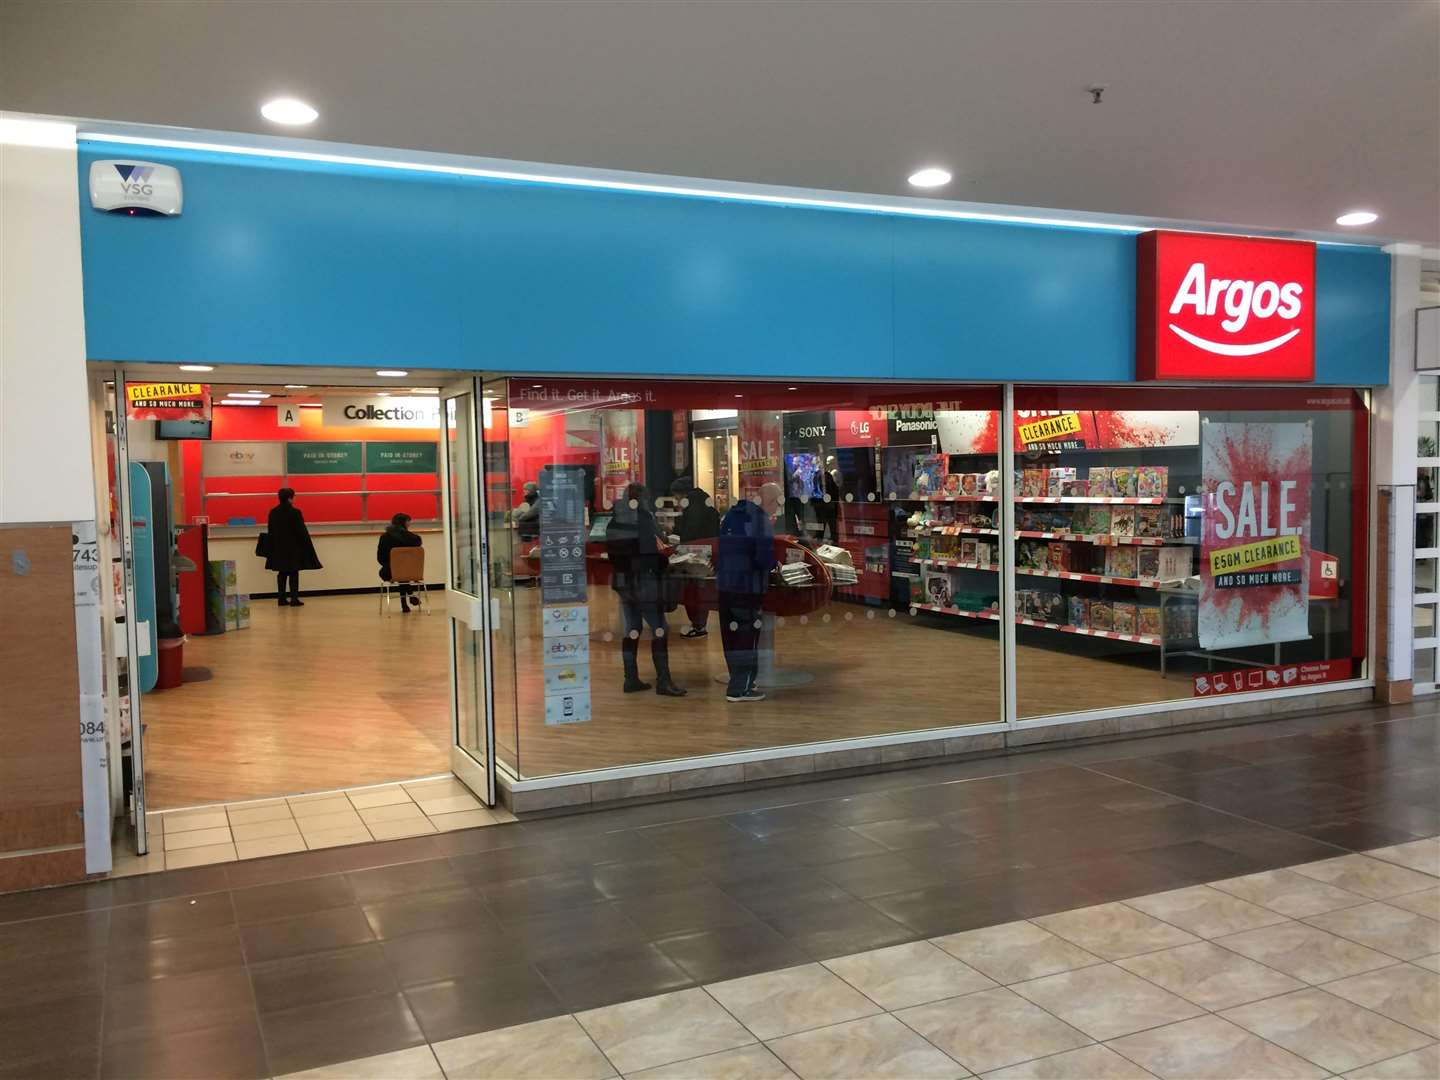 Argos, which is owned by Sainsbury's, will also stay shut on Boxing Day